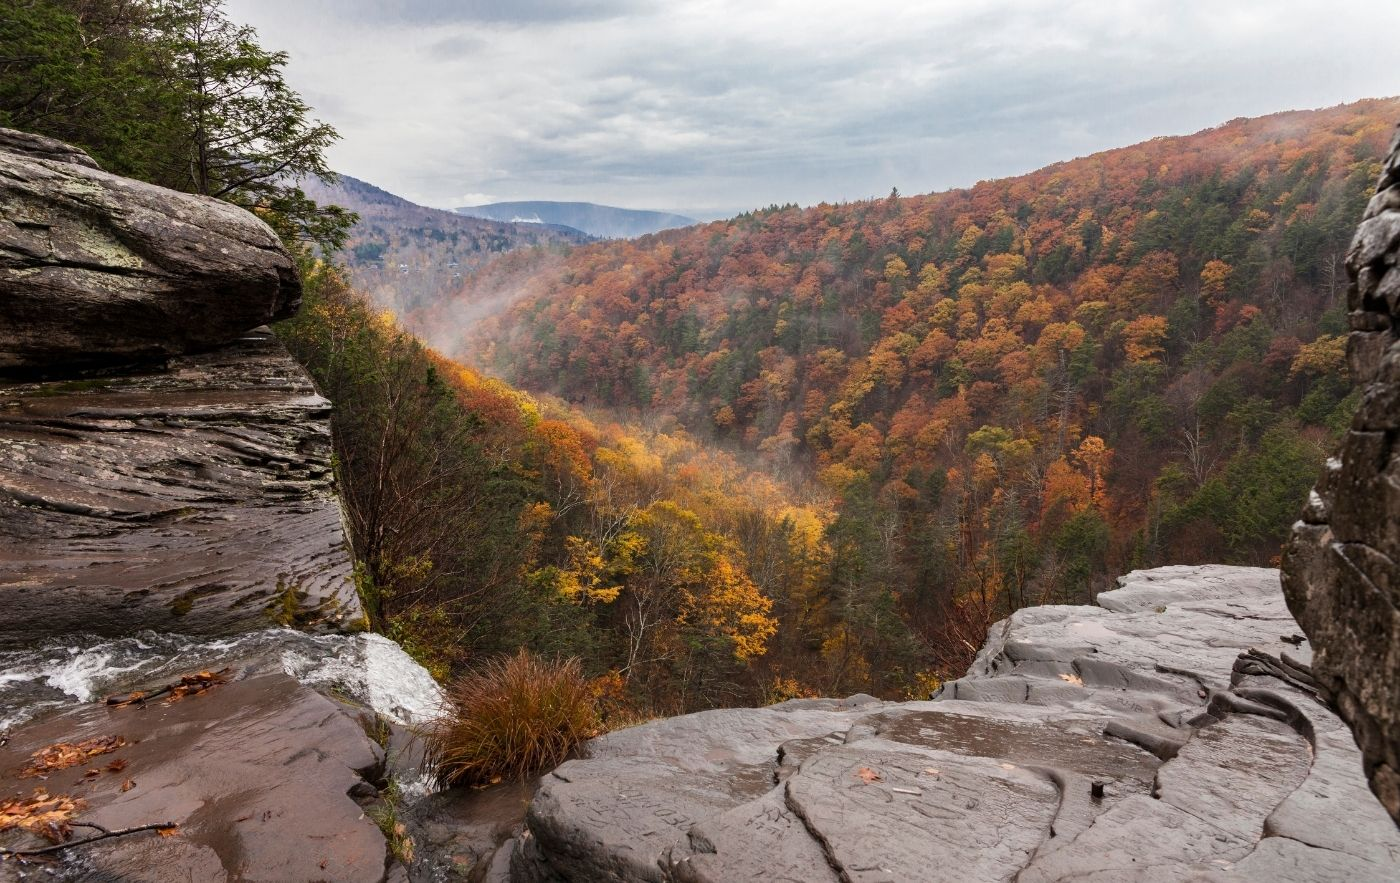 View of the Catskills through a mountain ledge in the fall.